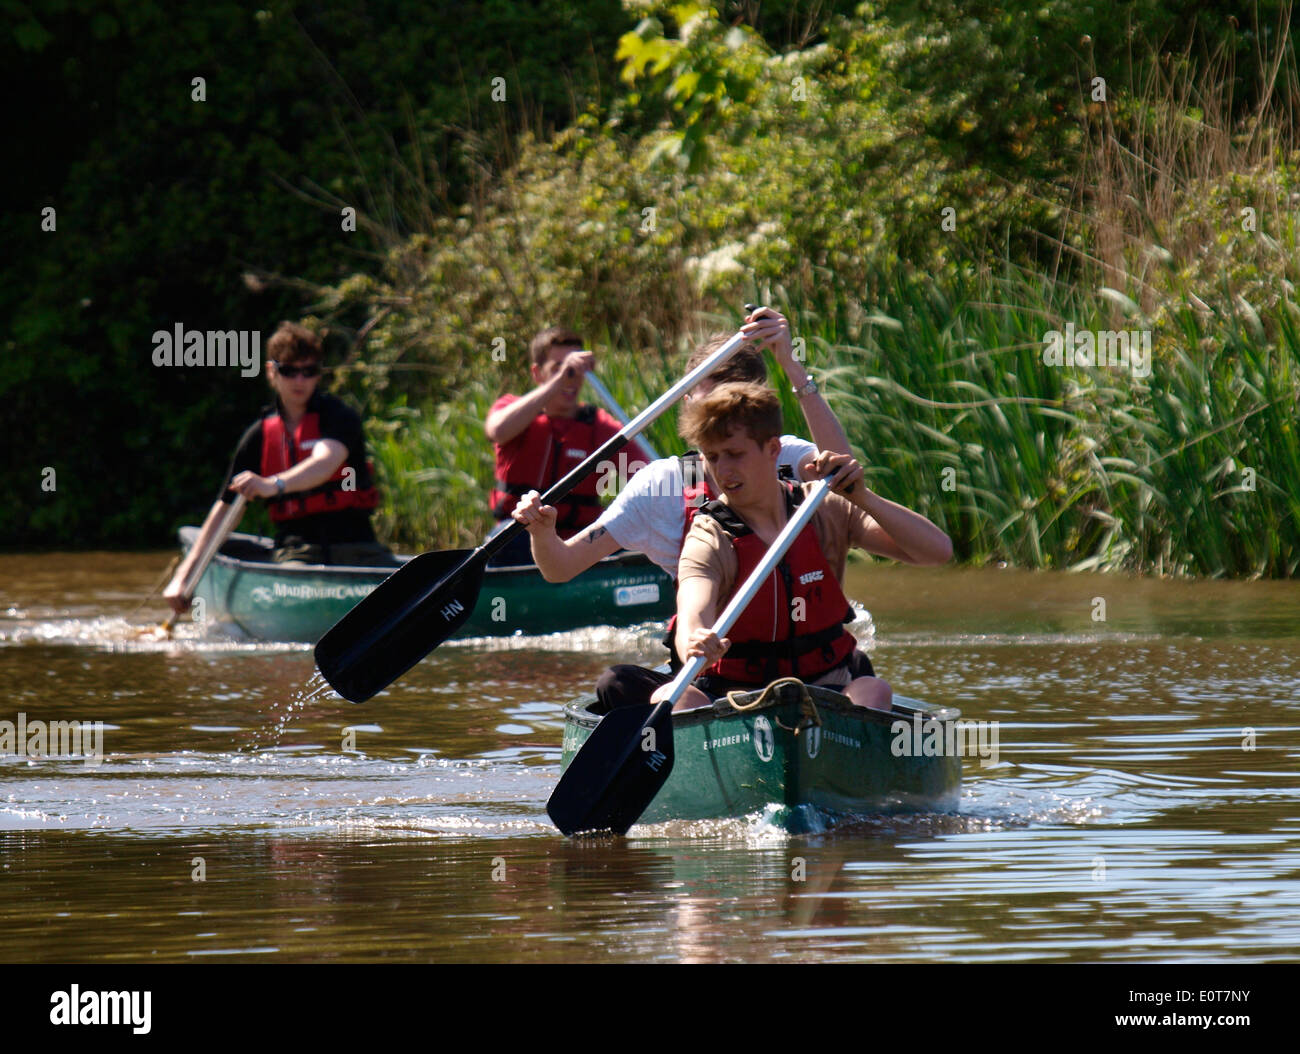 Teenage boys canoeing along the Bude canal, Cornwall, UK - Stock Image